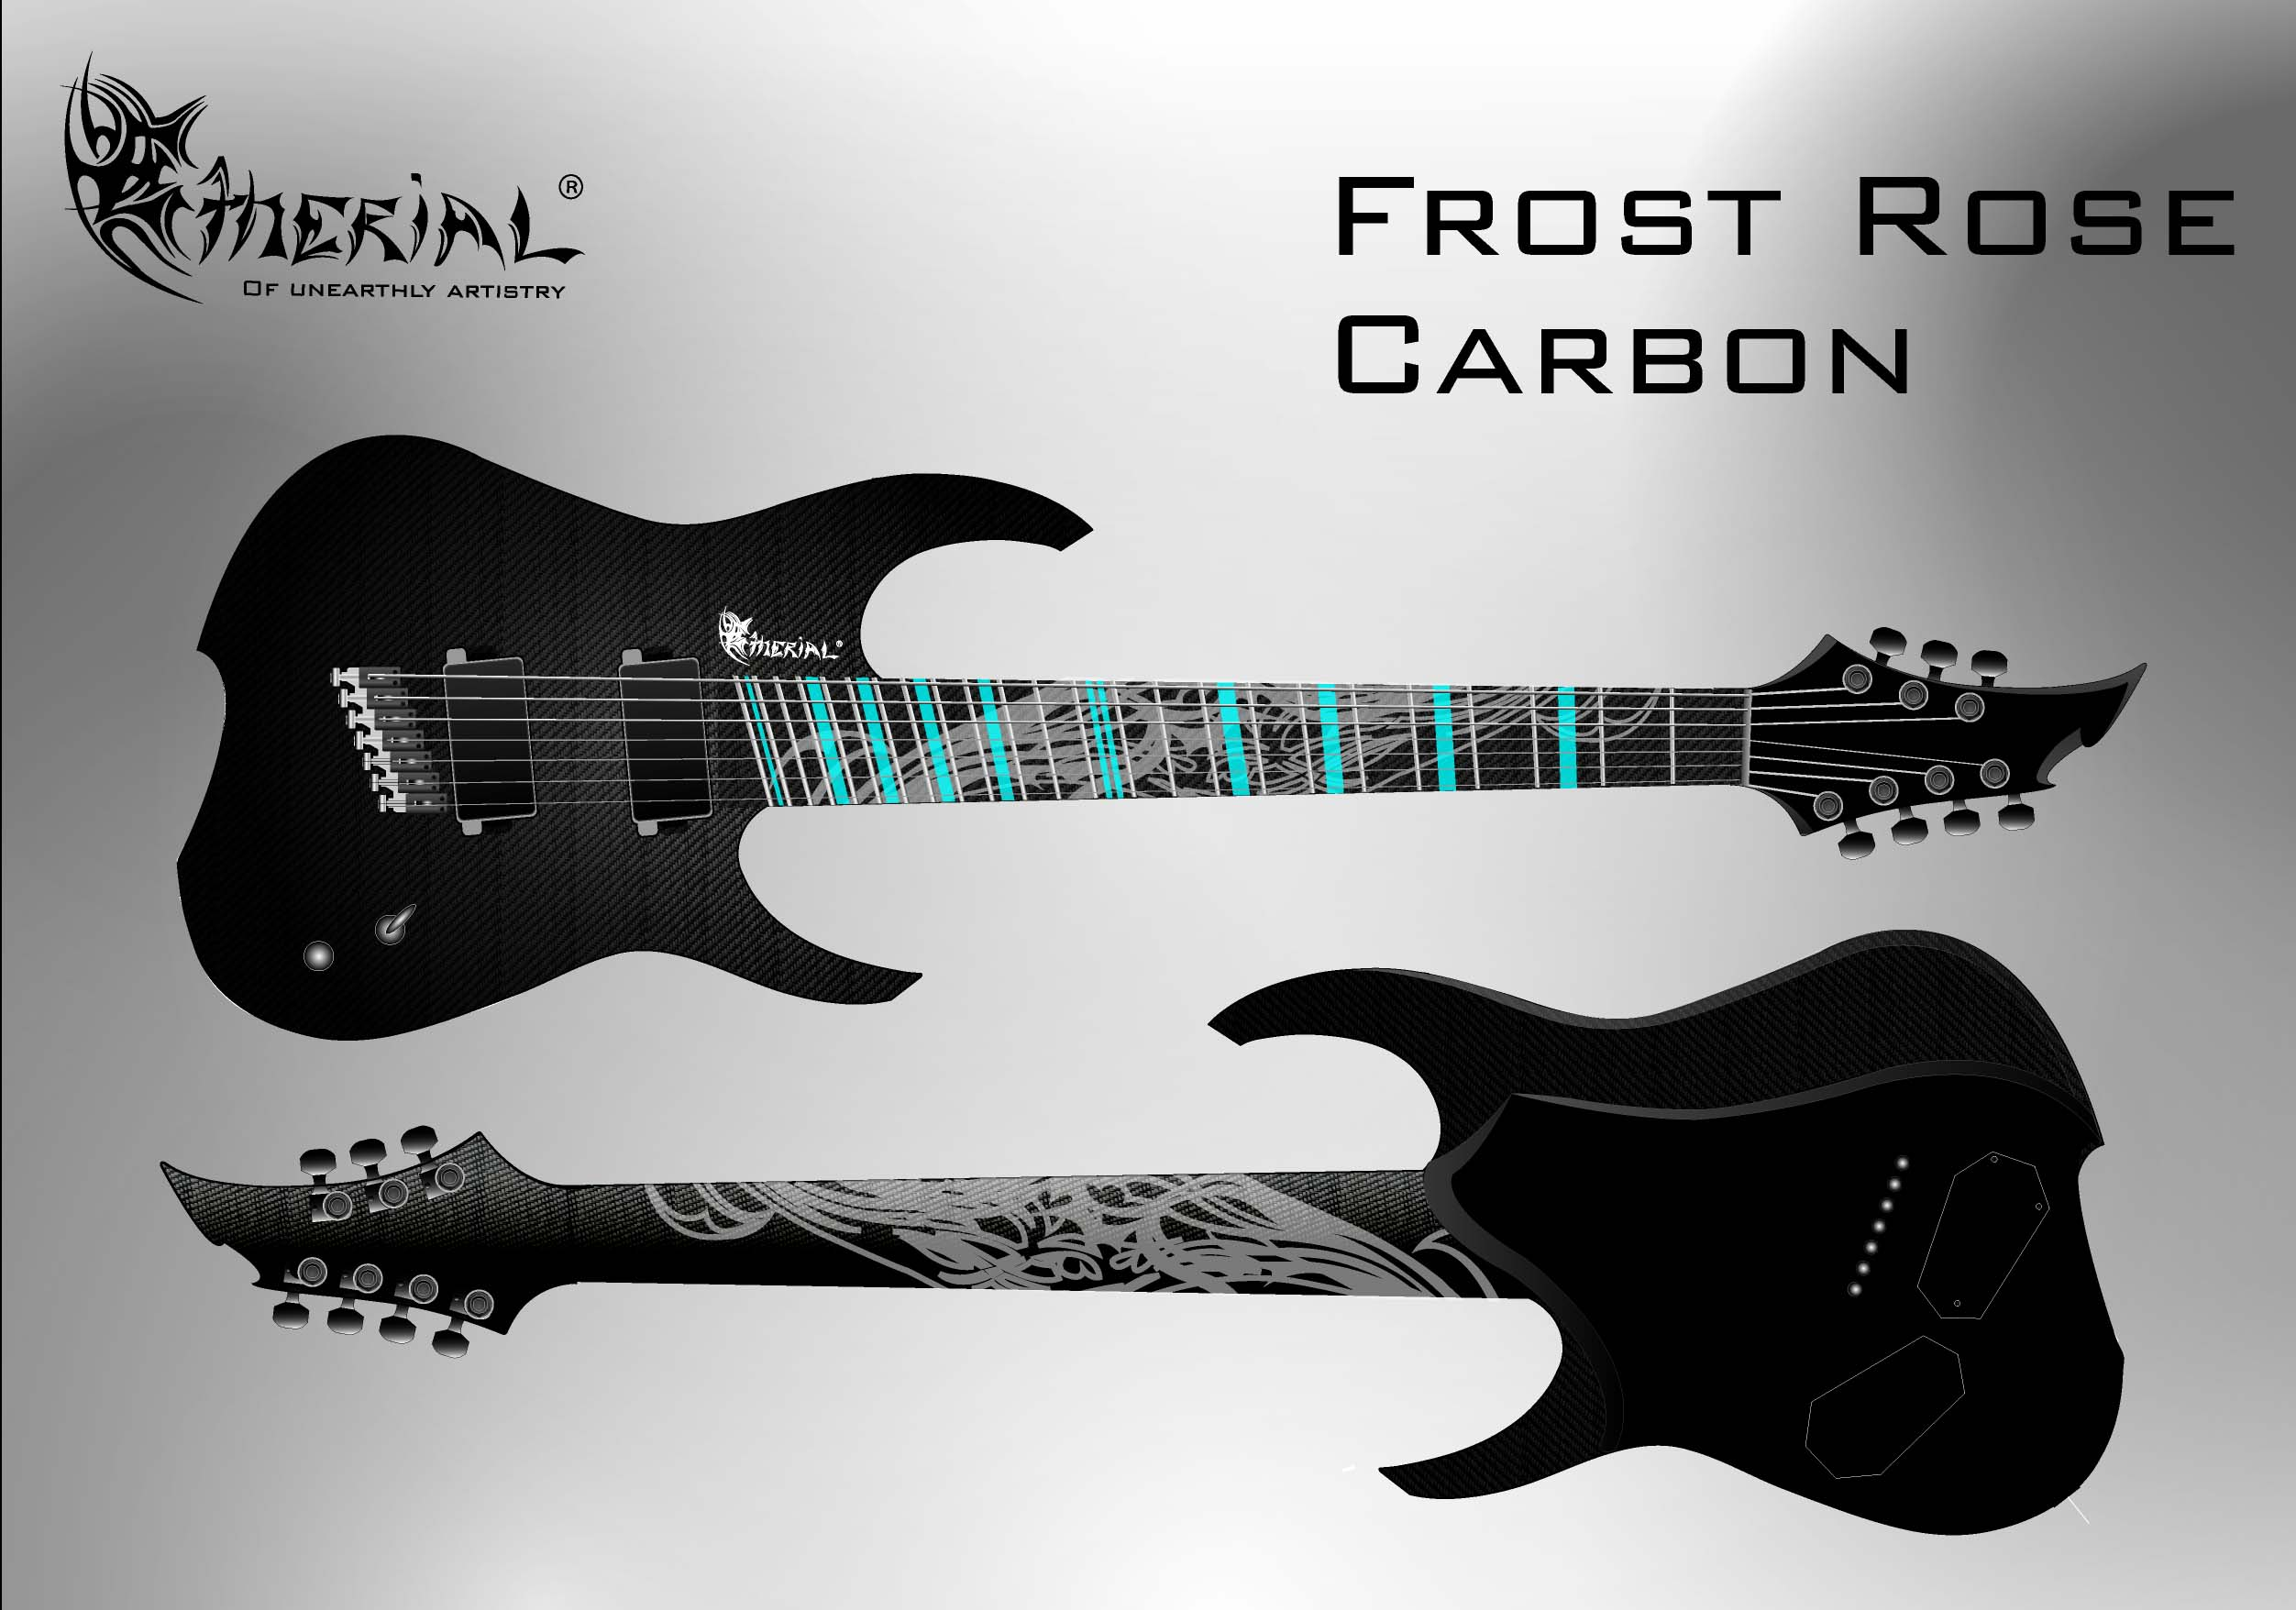 FROST ROSE carbon